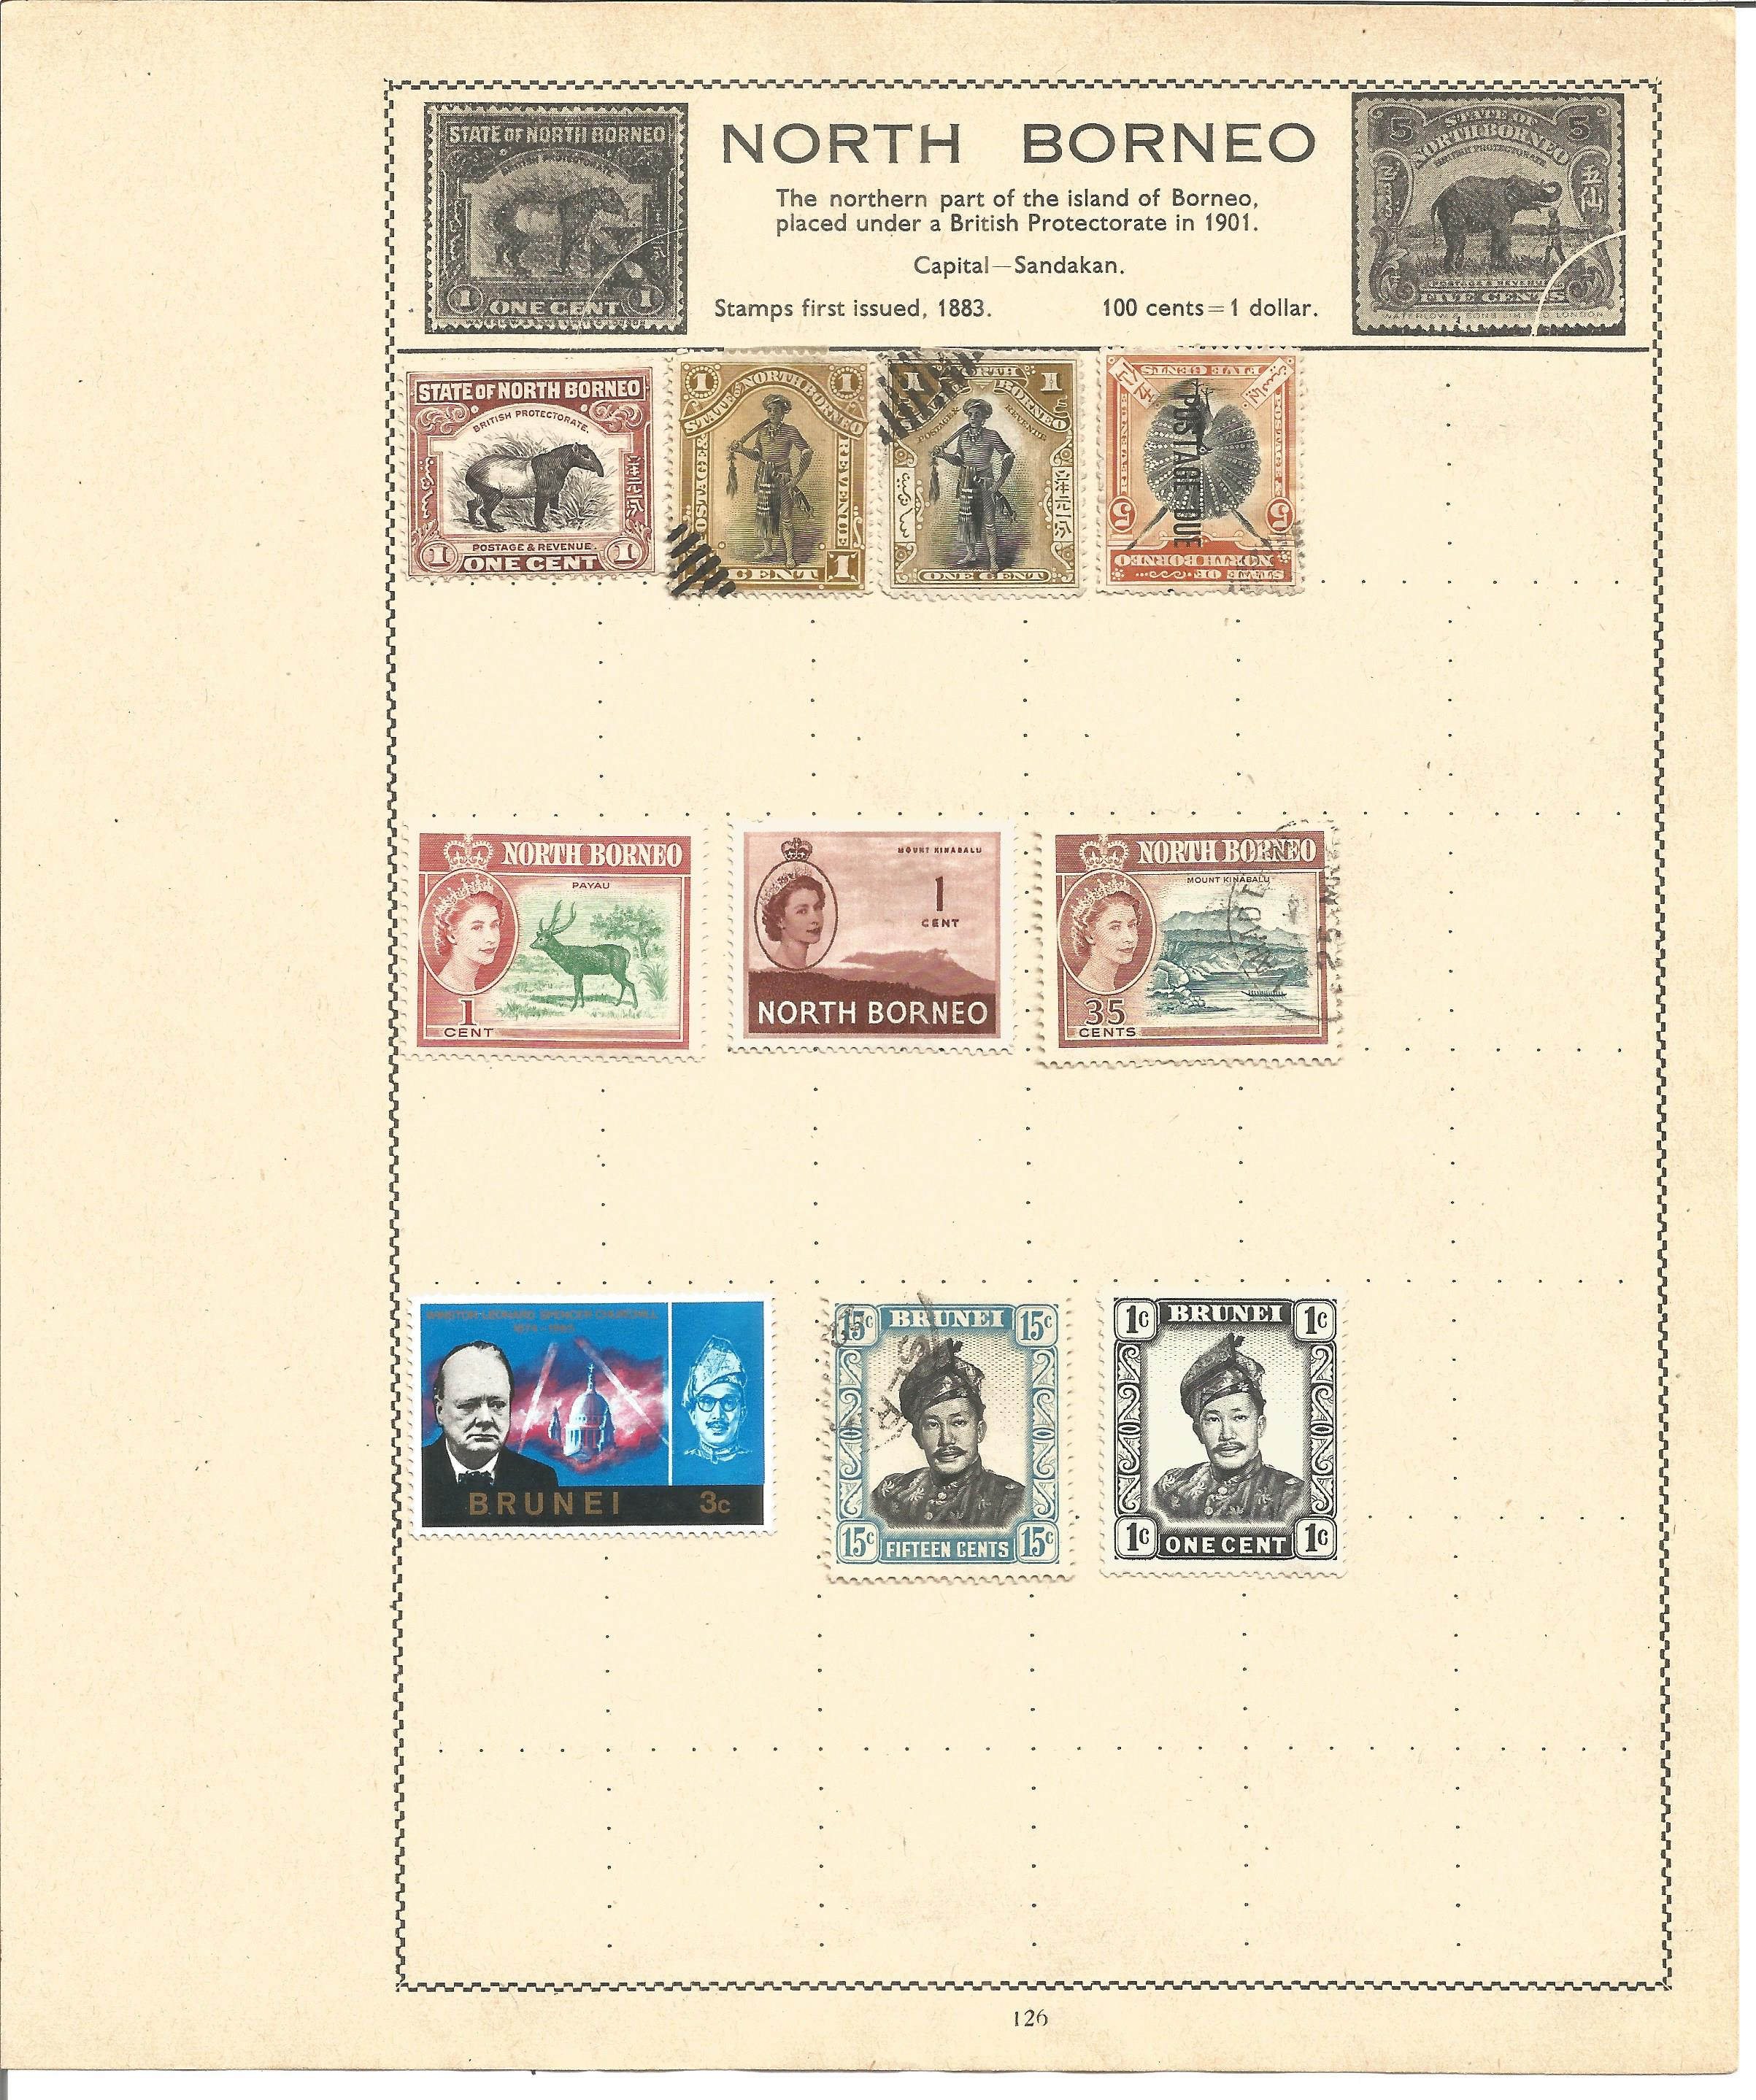 British Commonwealth stamp collection 7 loose album leaves countries include North Borneo,